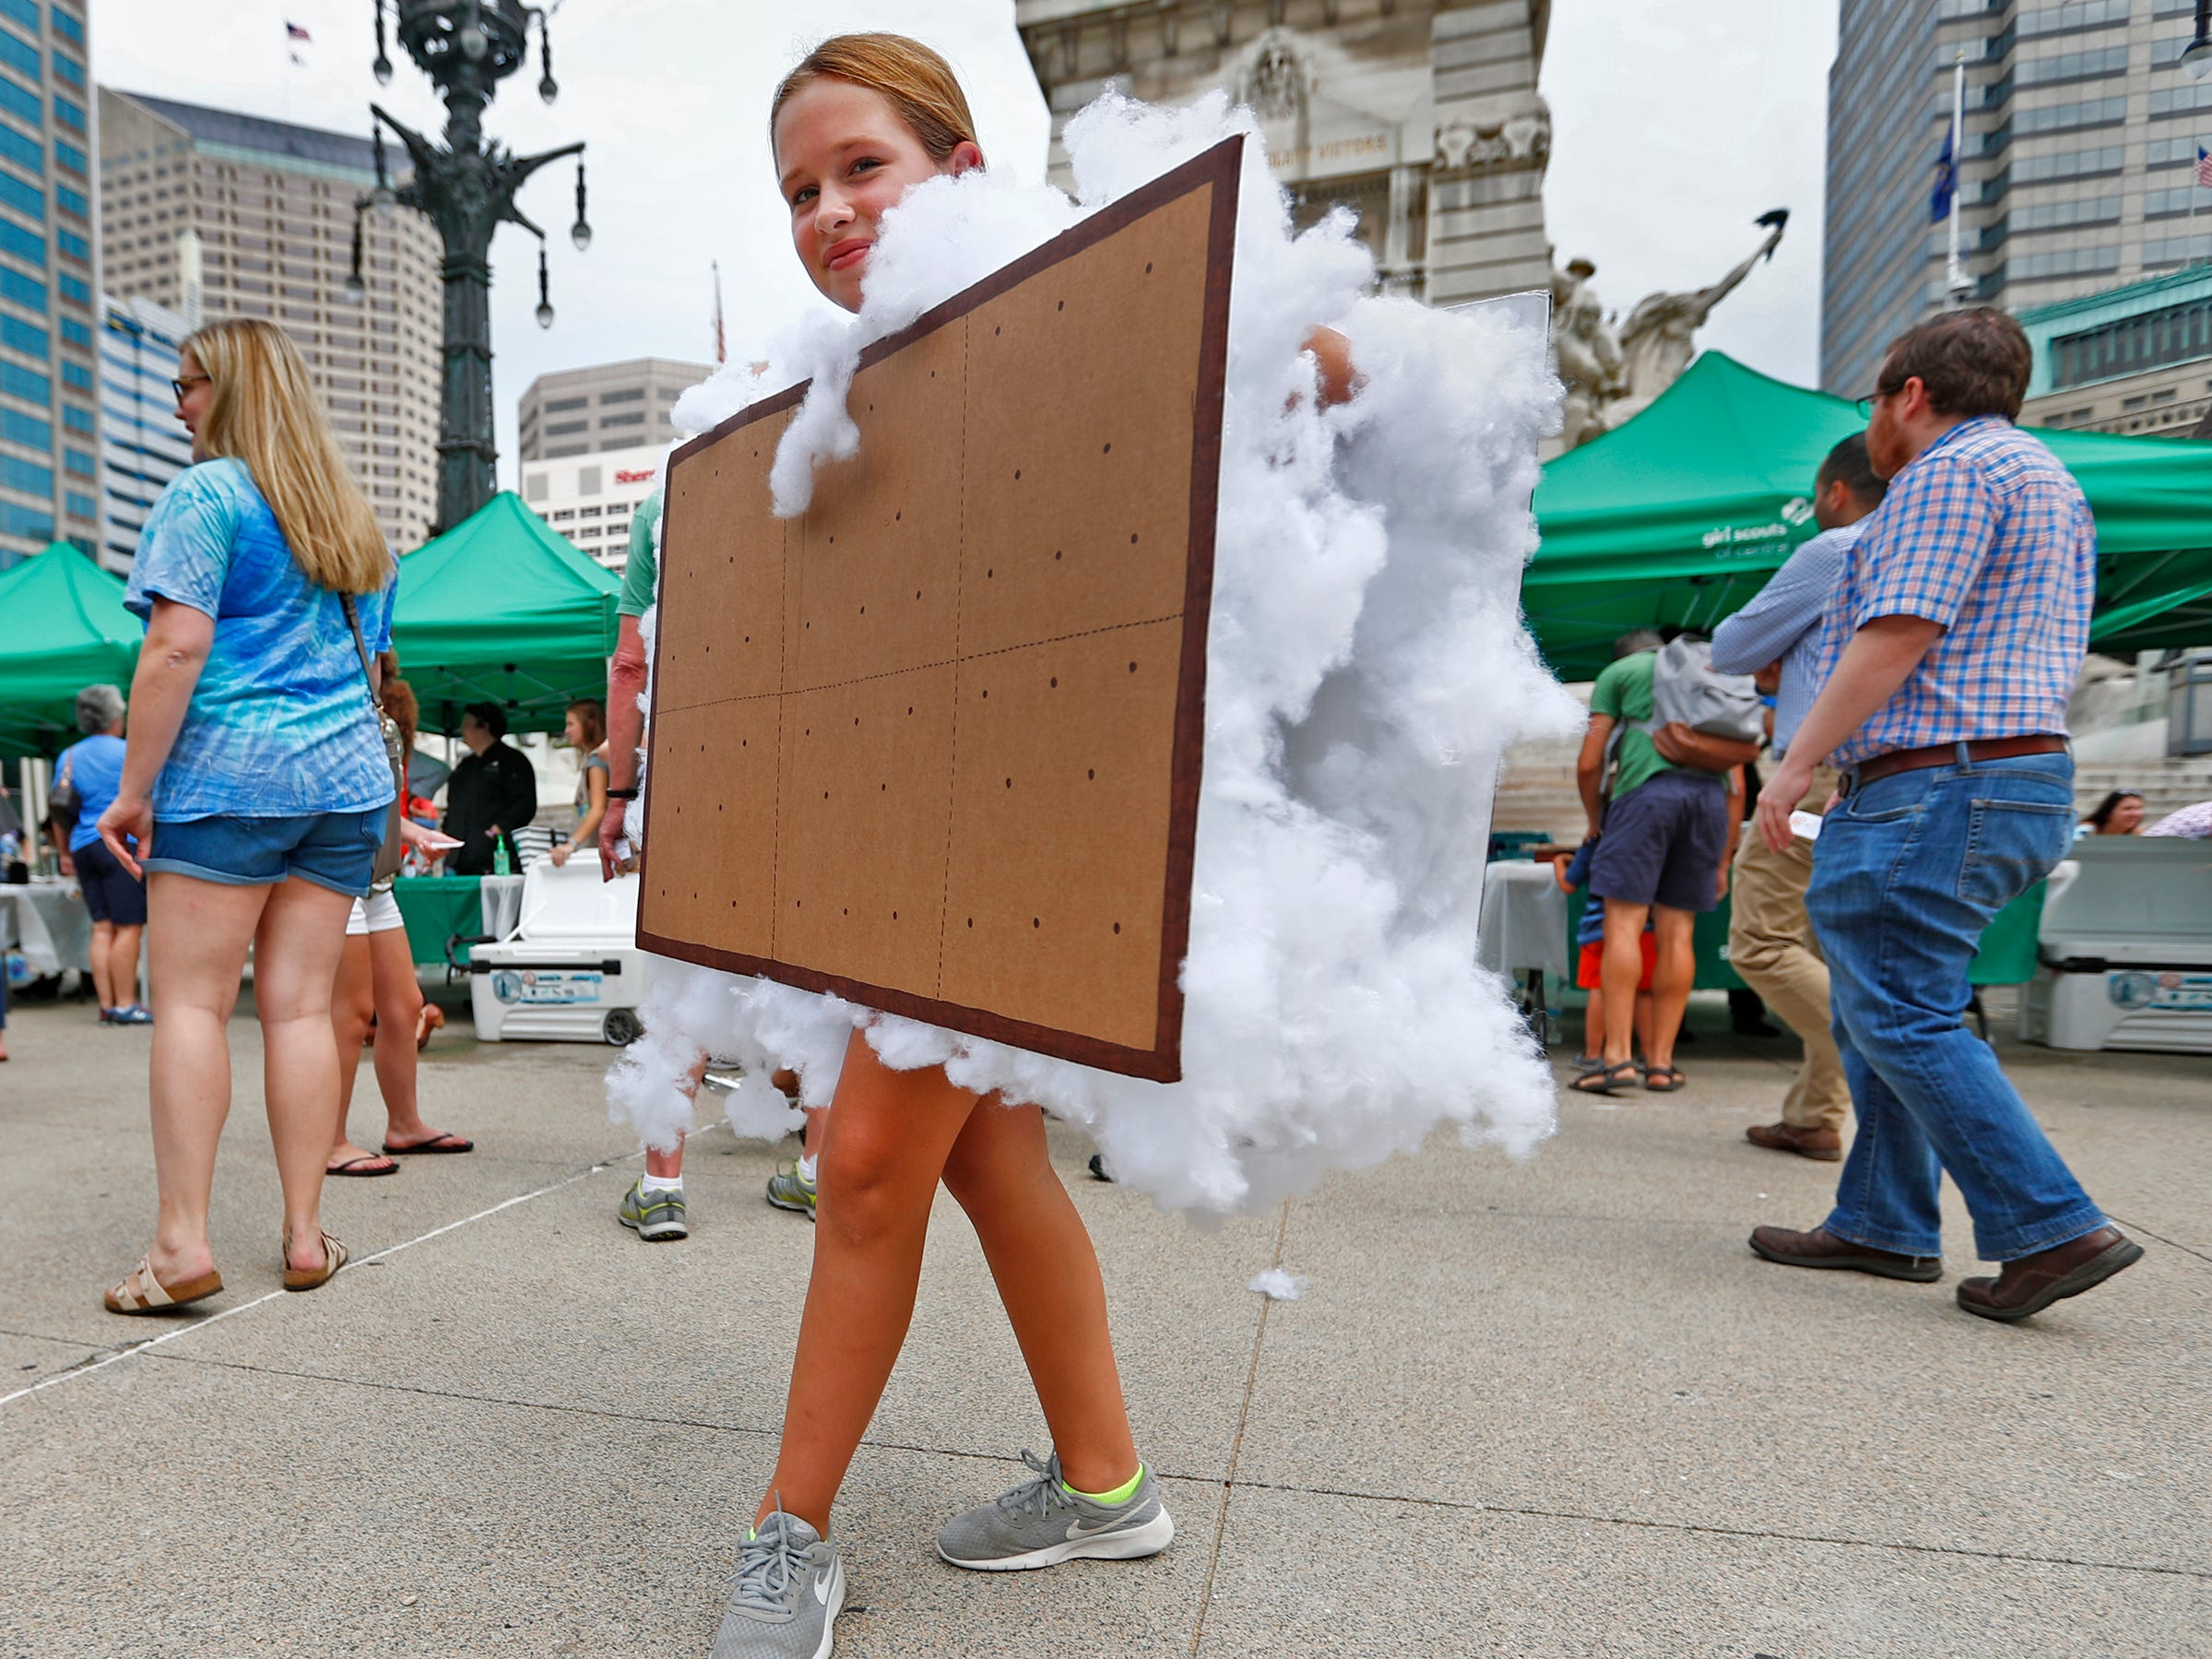 Evie Pendoski dons a s'mores outfit during the Girl Scouts' S'mores on the Circle event, Friday, Aug. 10, 2018.  The event celebrated National S'mores Day.  Seven local chefs were featured, creating gourmet s'mores treats, sold as a fundraiser.  Proceeds go for financial assistance for Girl Scouts, helping all girls who want to be a girl scout participating in hands-on adventures and STEM activities.